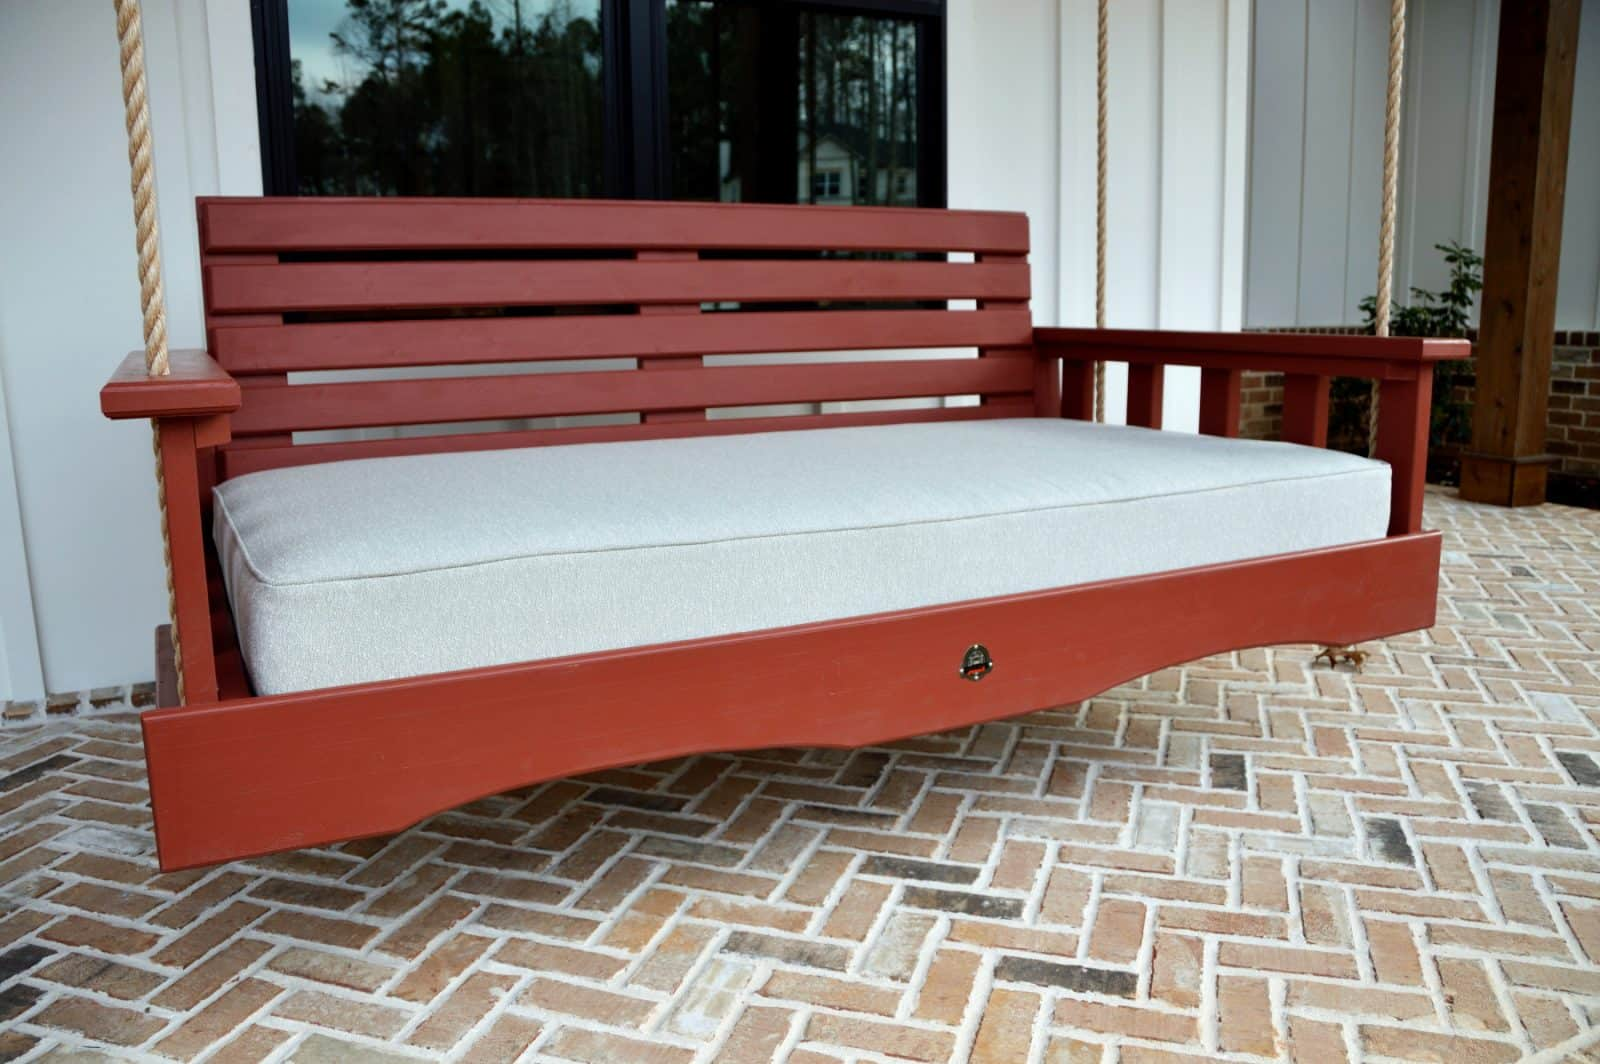 The Roswell Outdoor Porch Swing Bed